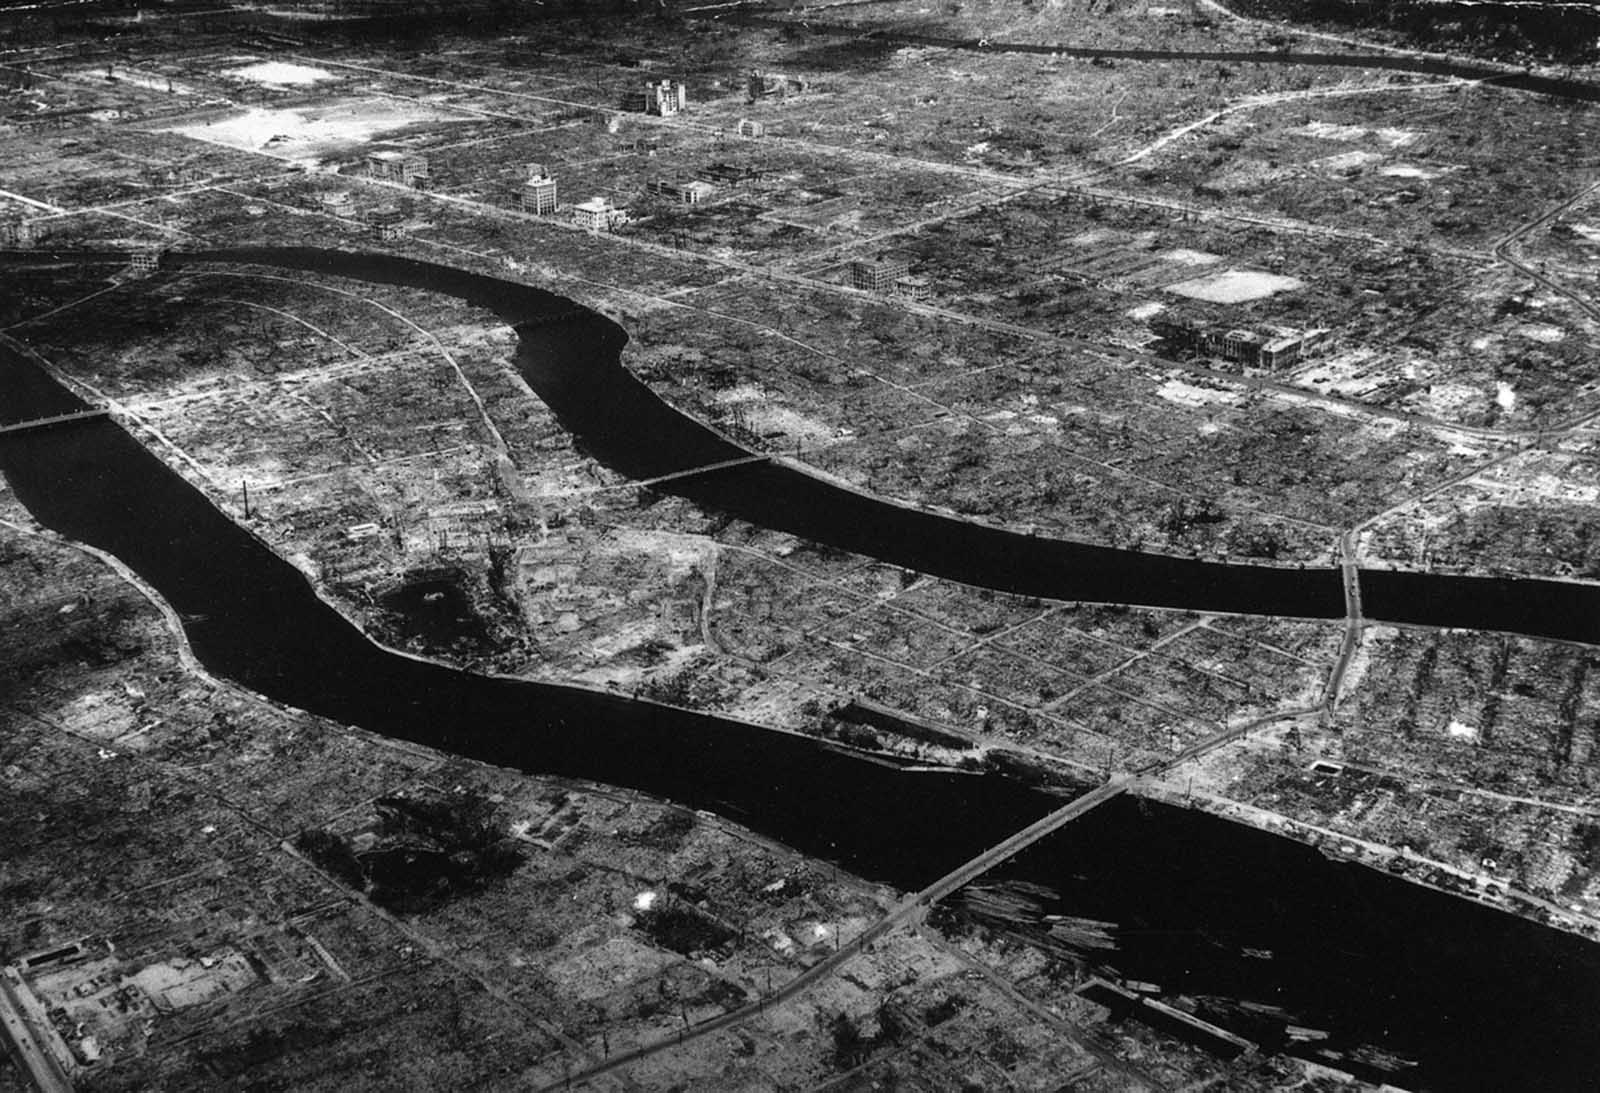 An aerial view of Hiroshima, some time after the atom bomb was dropped on this Japanese city. Compare this with pre-war photo number 5 above.